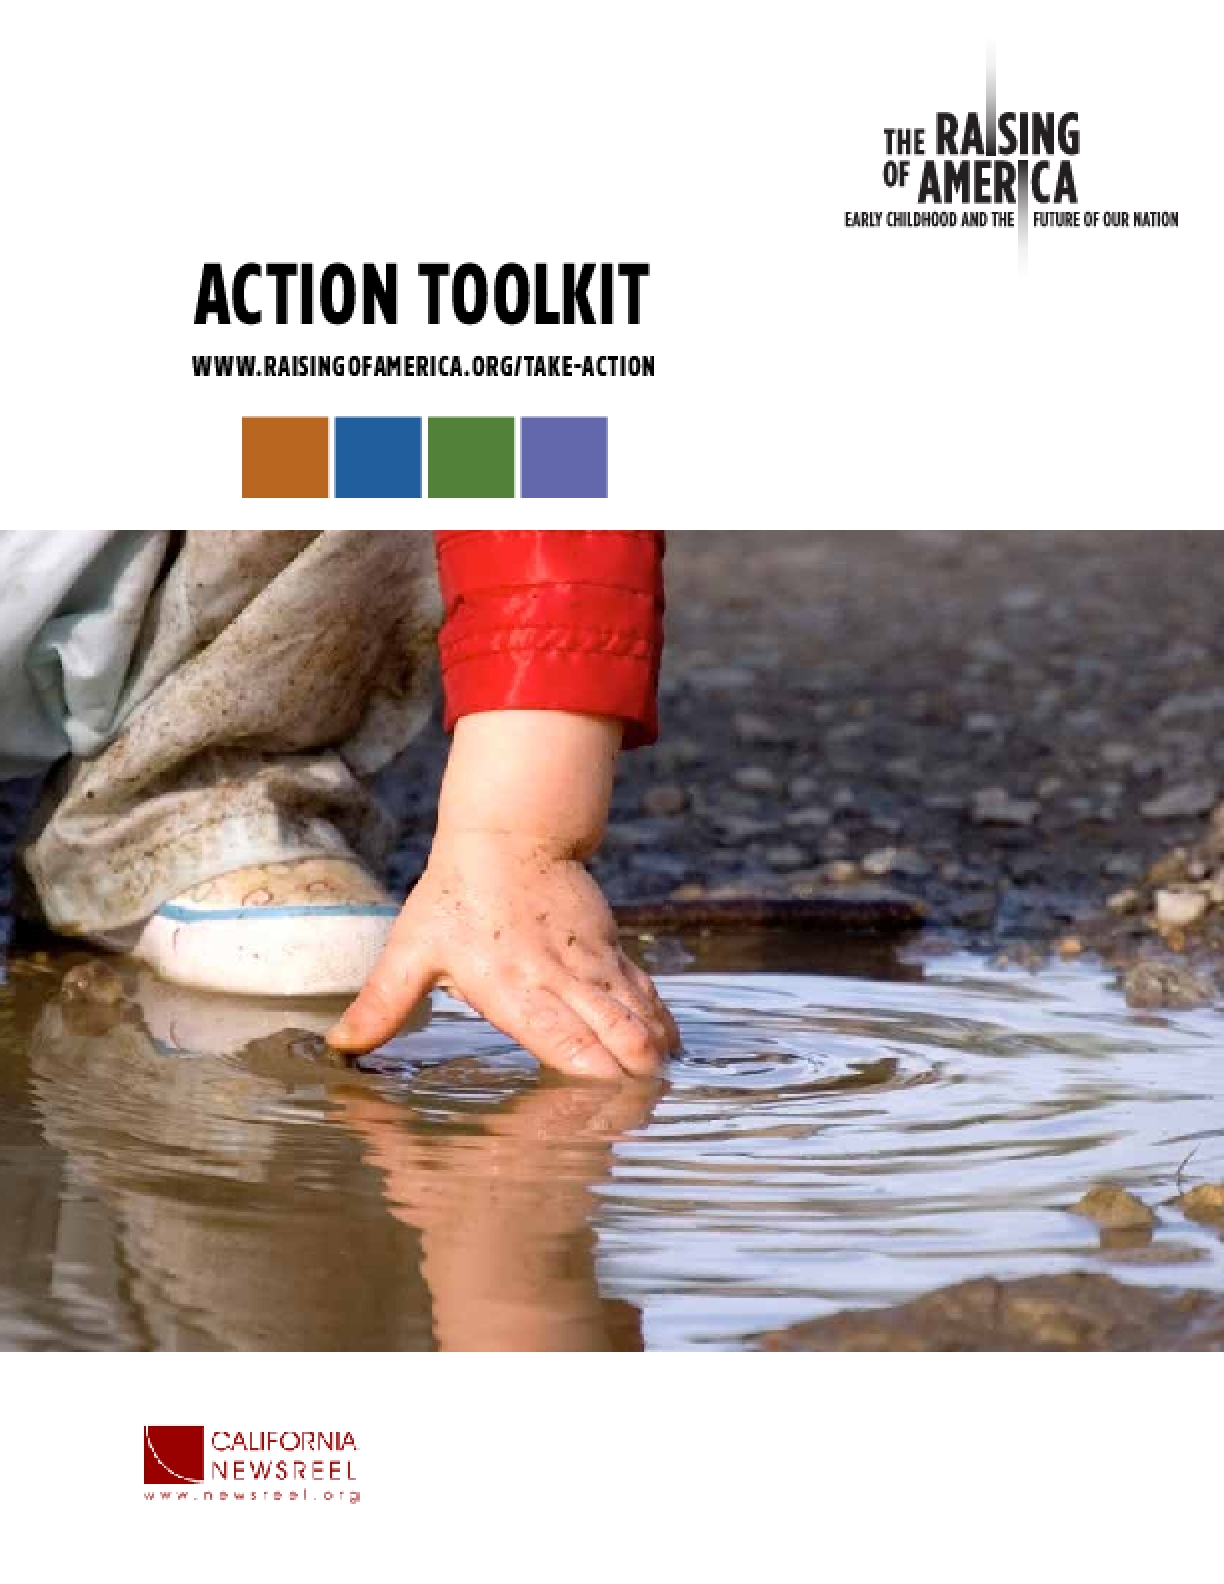 The Raising of America: Action Toolkit